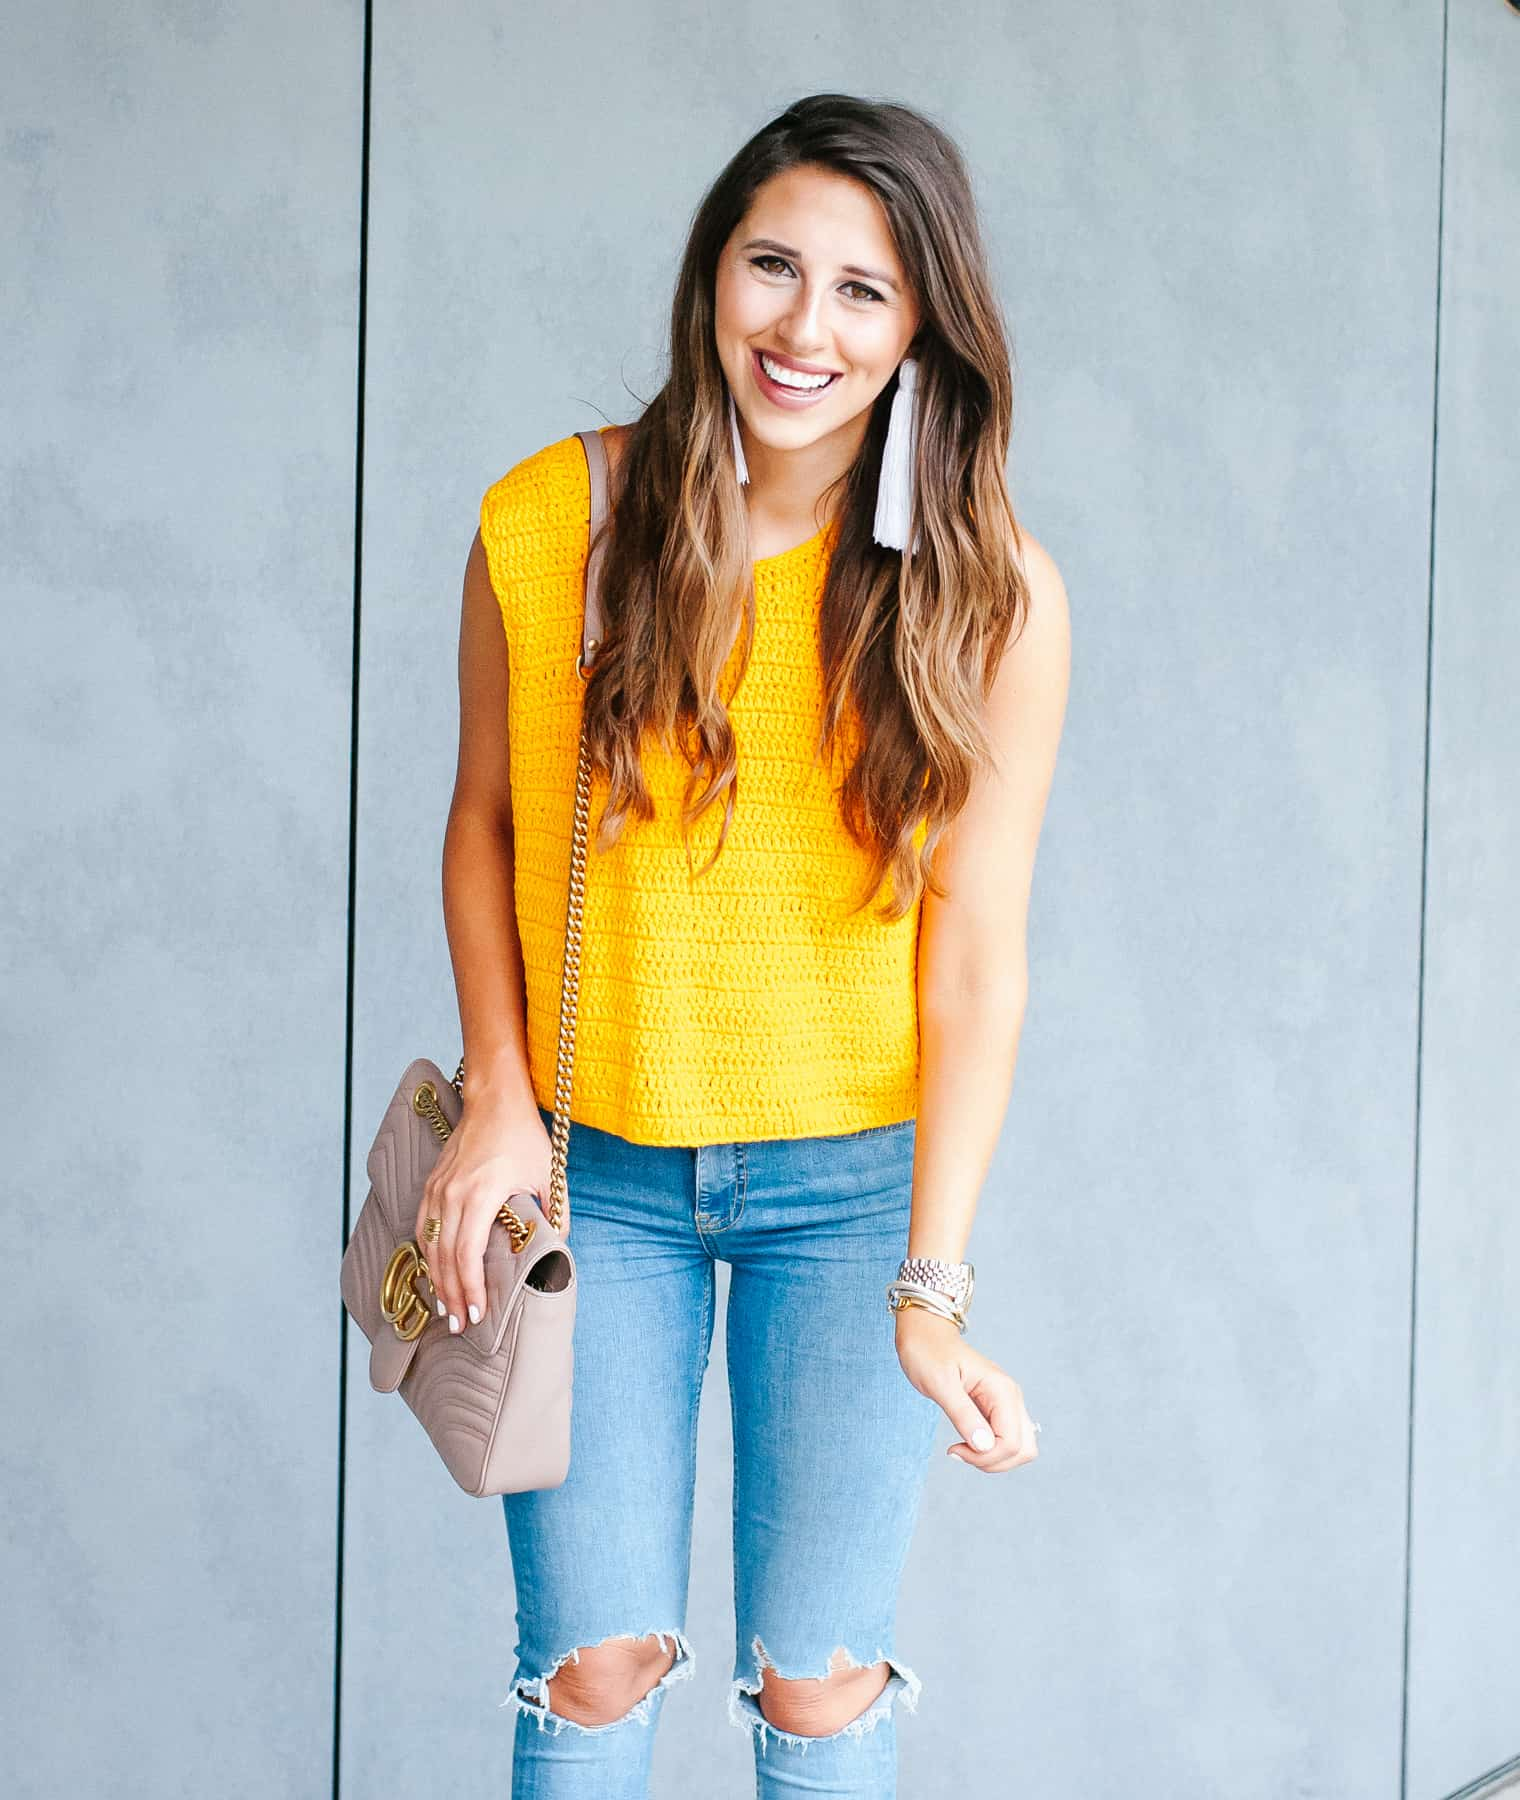 Dress Up Buttercup, Dede Raad, Houston Blogger, Fashion Blogger, Mellow Knit Yellow, knit top, ripped jeans, tassel earrings